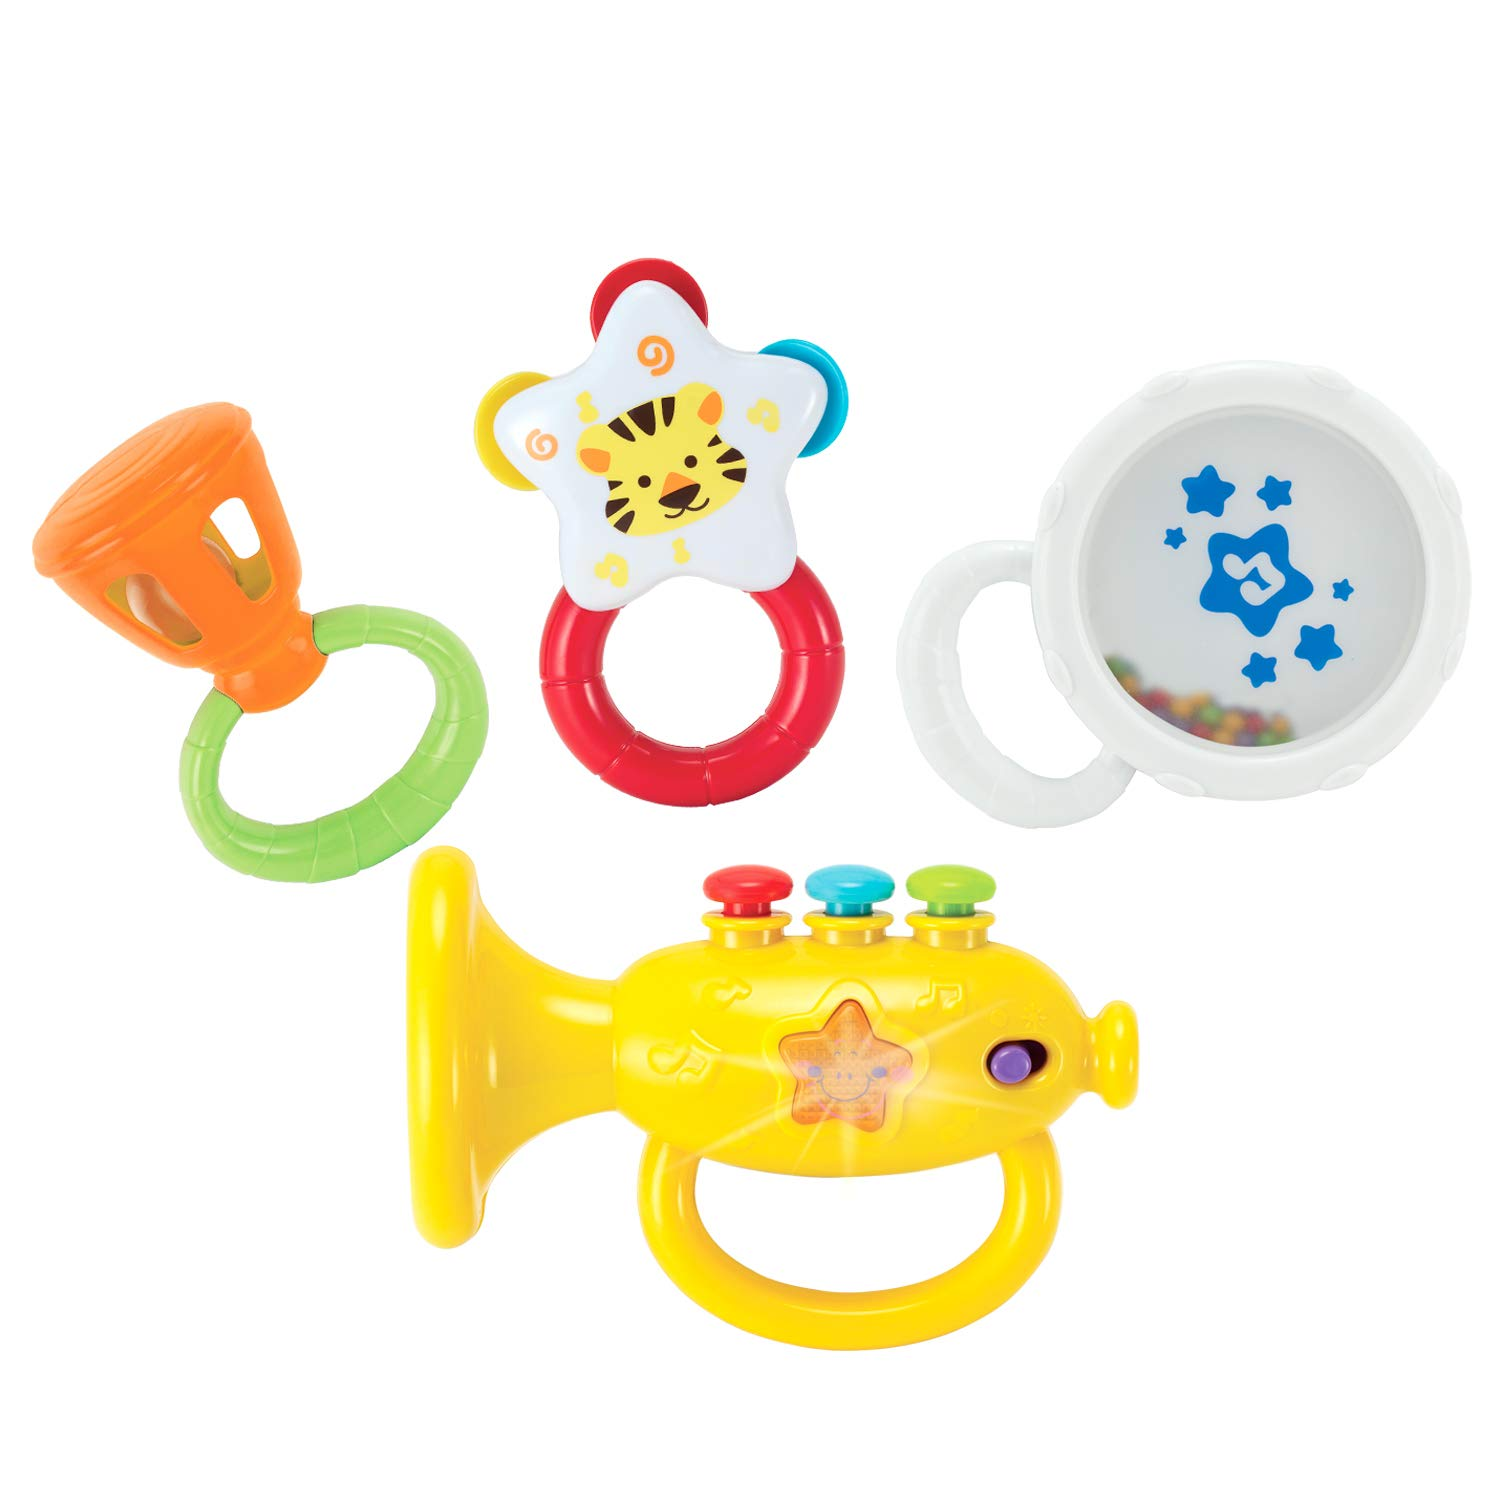 Toddler Learning Toys for Early Development KiddoLab Musical Instruments Set with an Electronic Trumpet and Rattles for Babies First Infant Music Toy for 3 to 18 Months Old Boxiki